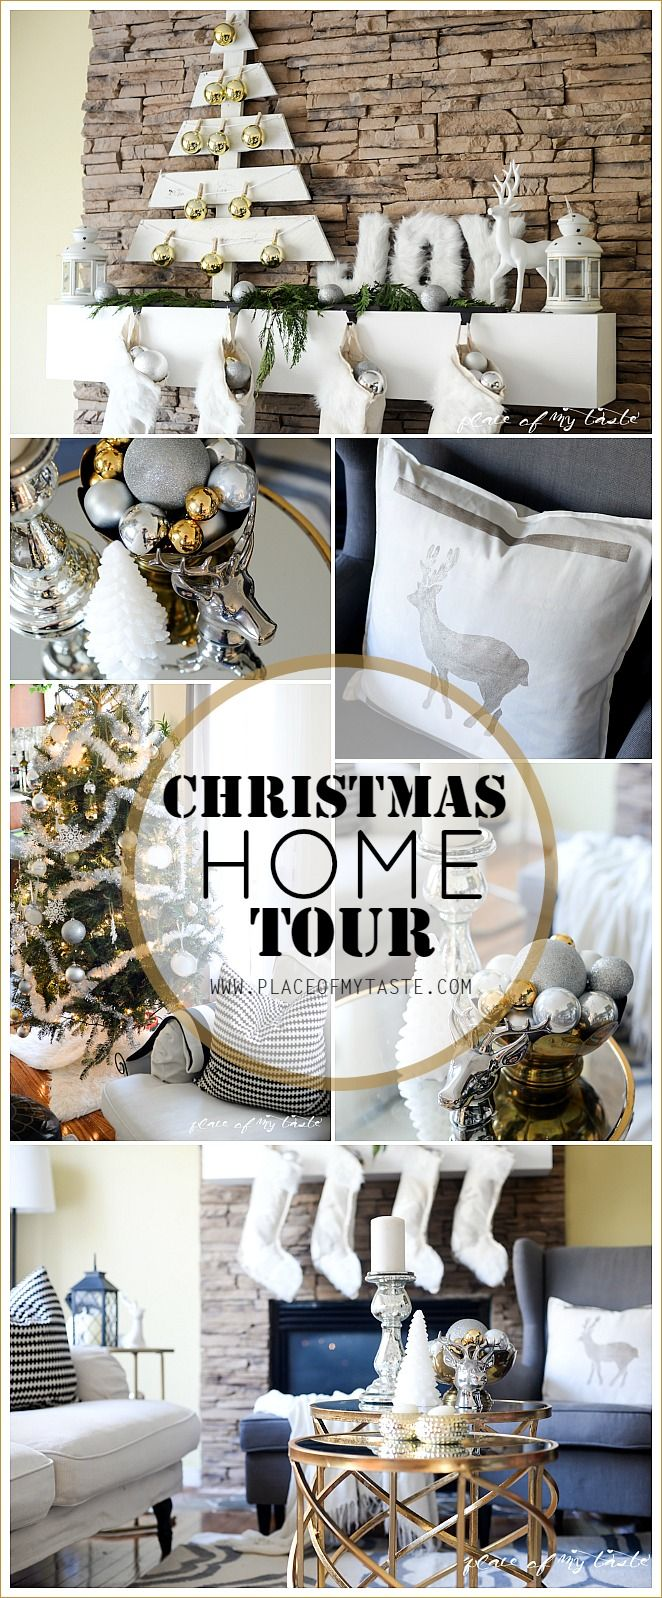 Christmas home tour - Come see this gorgeous and festive Christmas home decor. Placeofmytaste.com